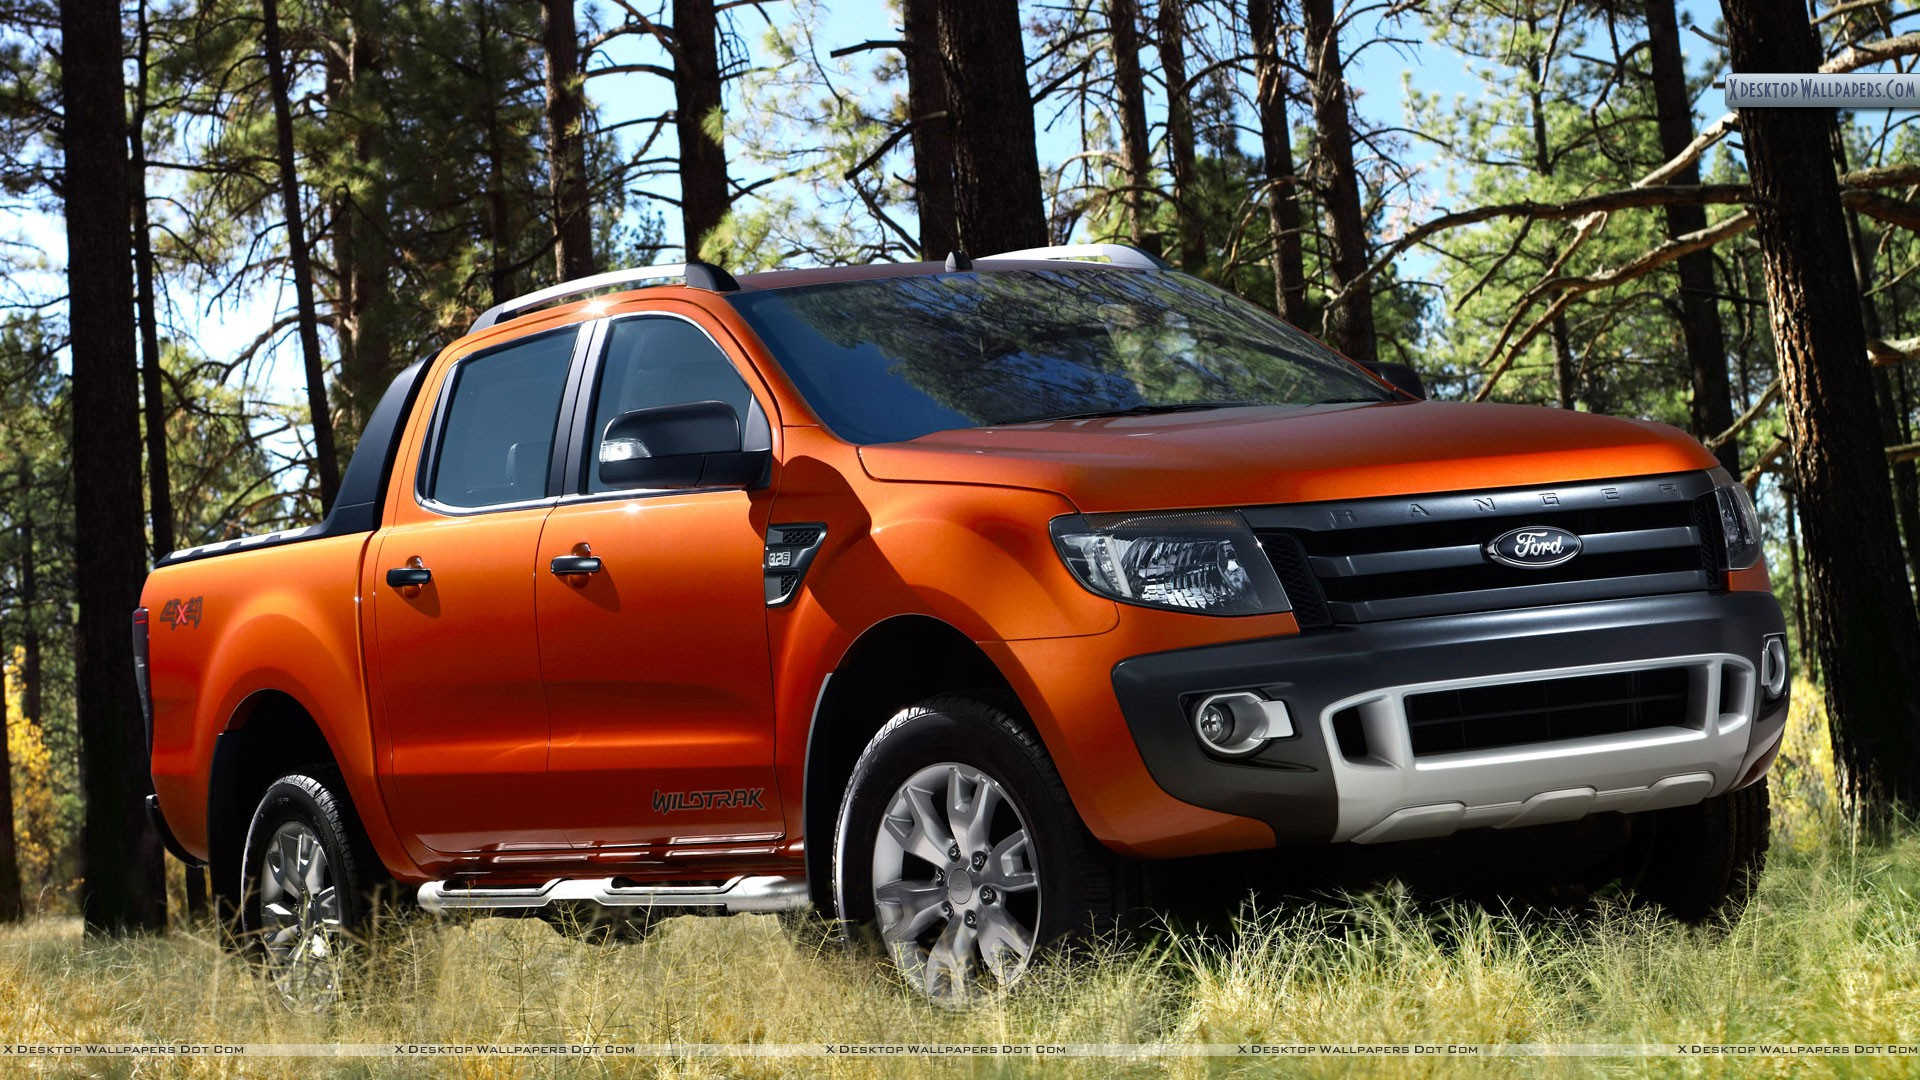 2011 ford ranger wildtrak in jungle wallpaper. Black Bedroom Furniture Sets. Home Design Ideas